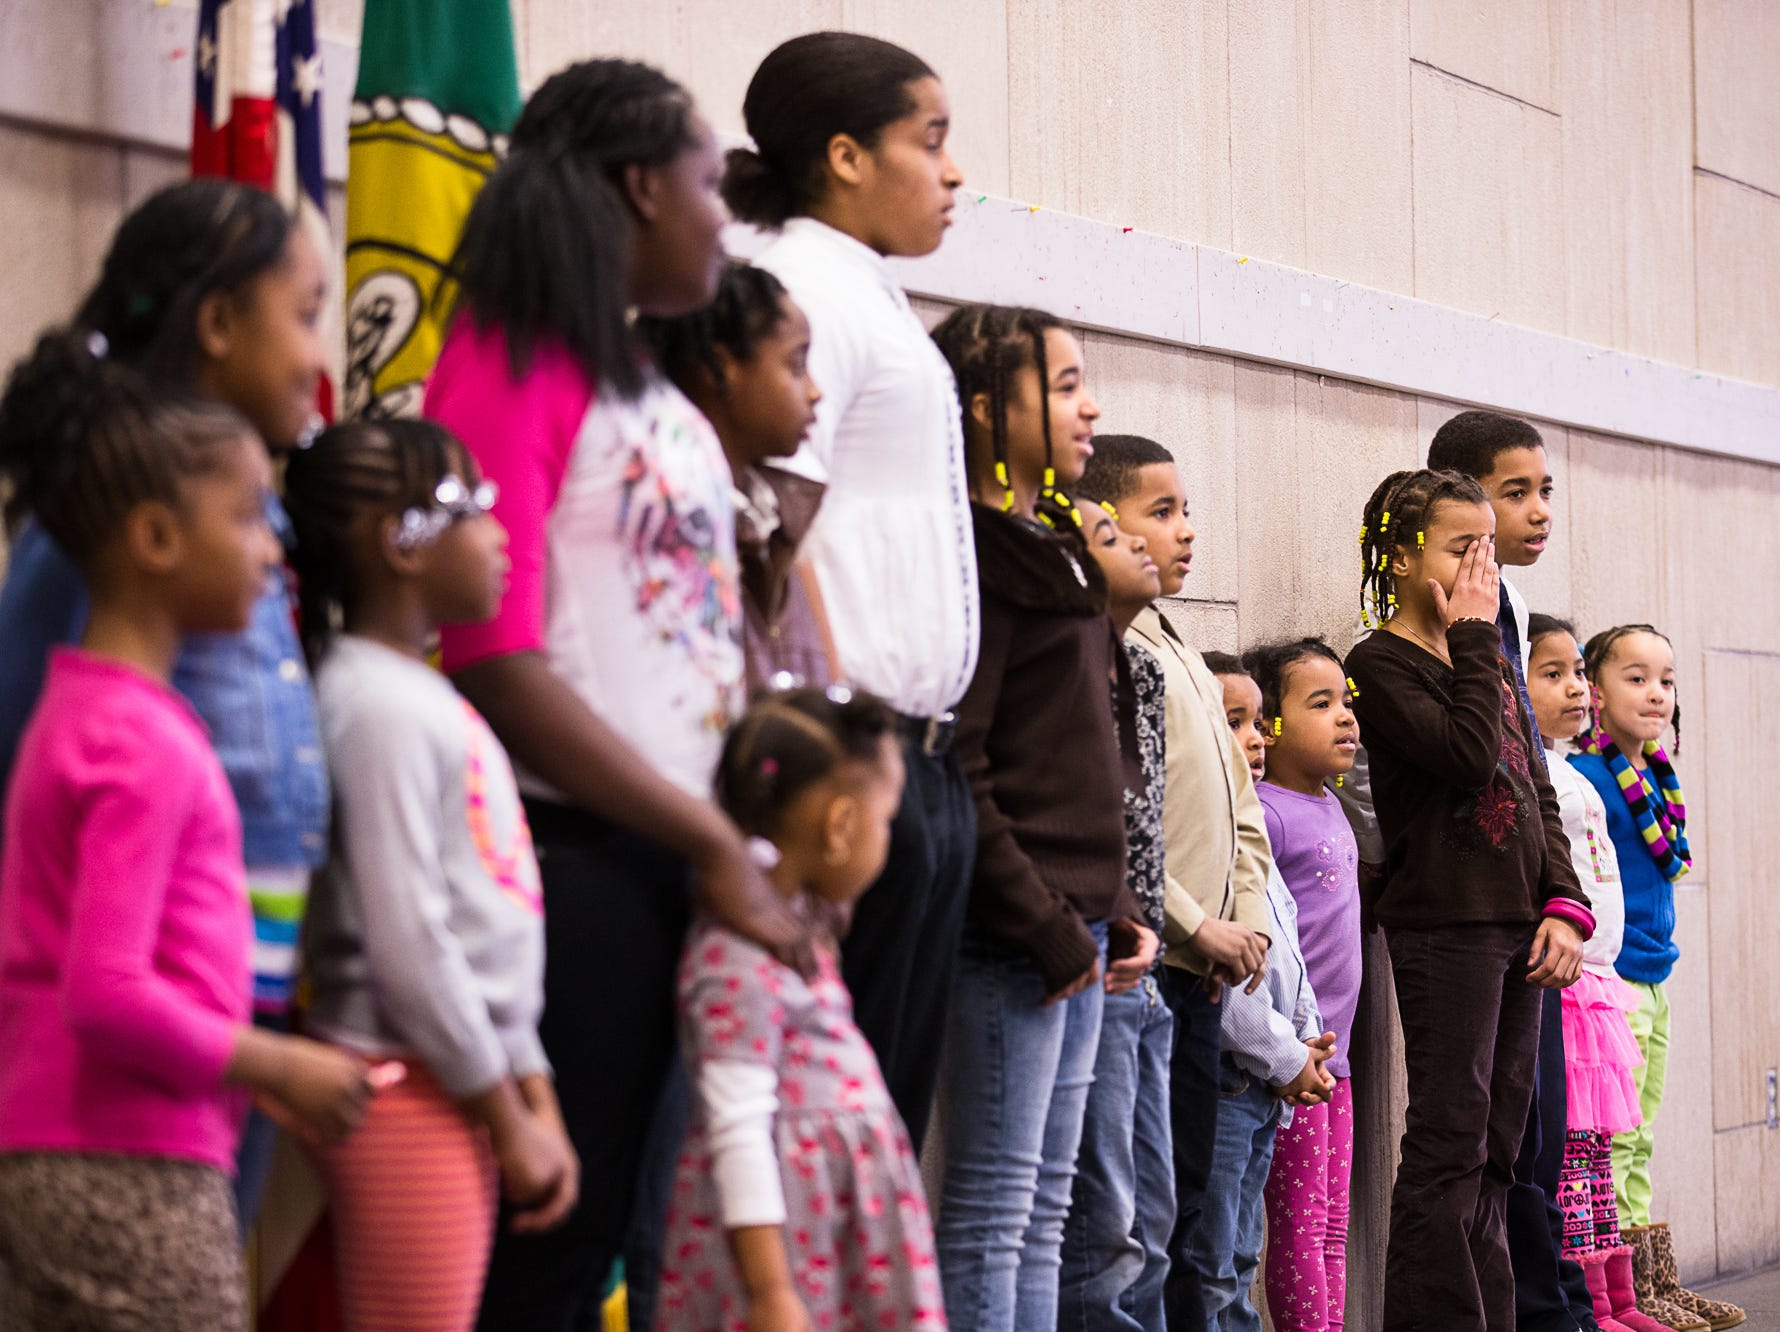 2014: The Youth Choir from Trinity A.M.E. Zion Church performs.  The NAACP Broome/Tioga chapter celebrates Martin Luther King Jr. Day at the Binghamton City Hall.